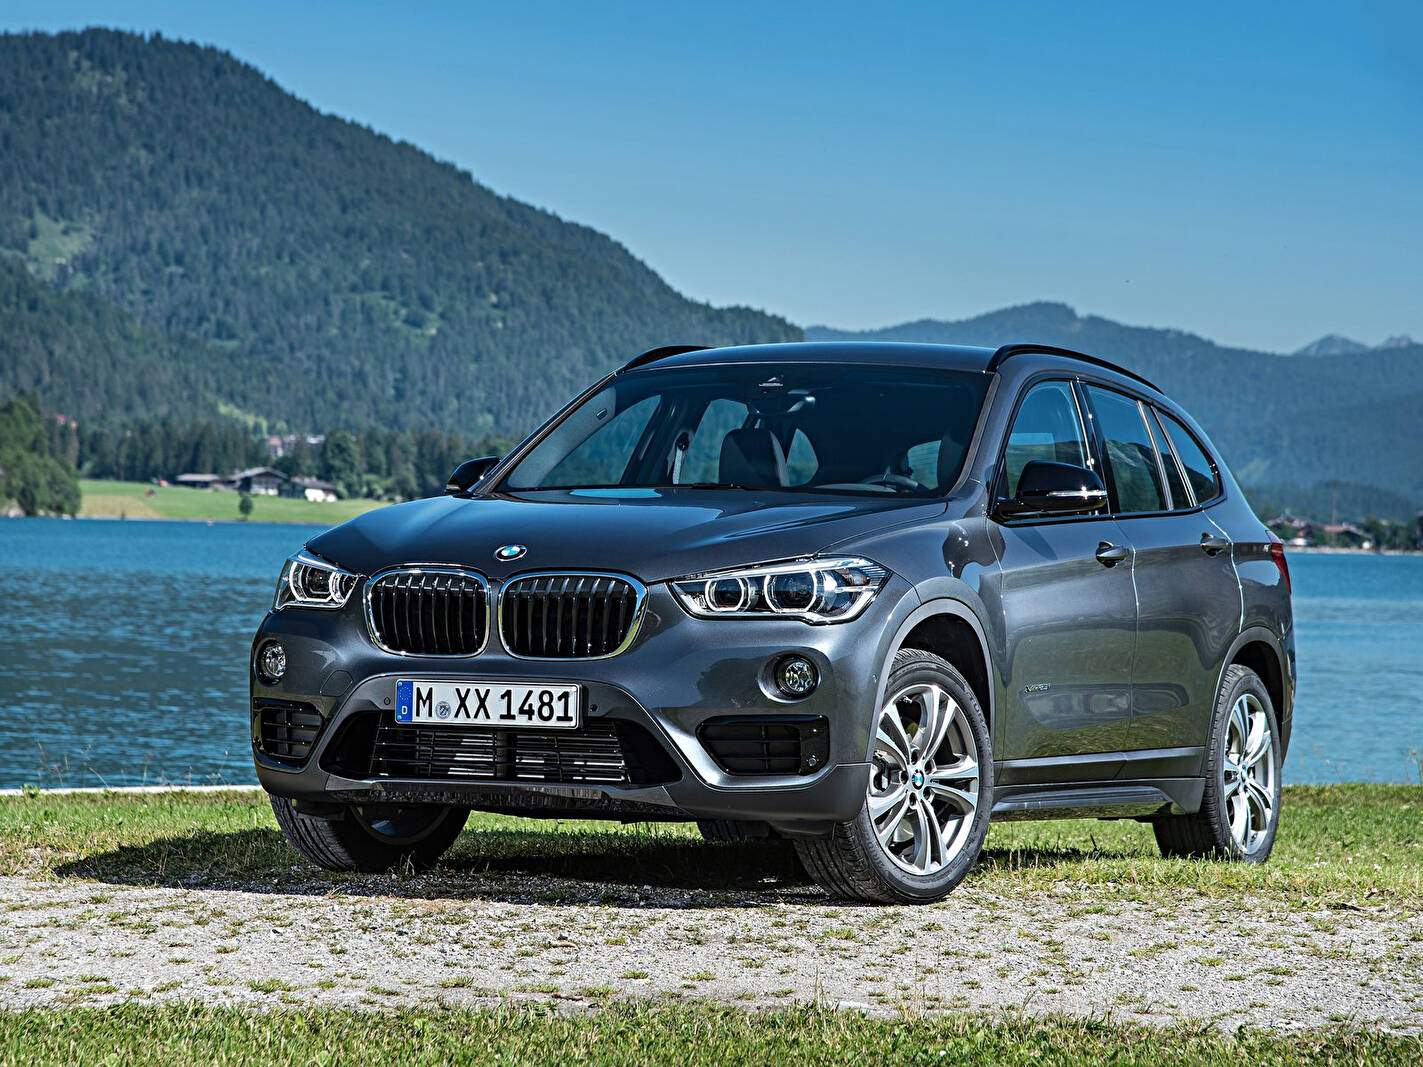 fiche technique bmw x1 sdrive18i f48 2015 2017. Black Bedroom Furniture Sets. Home Design Ideas